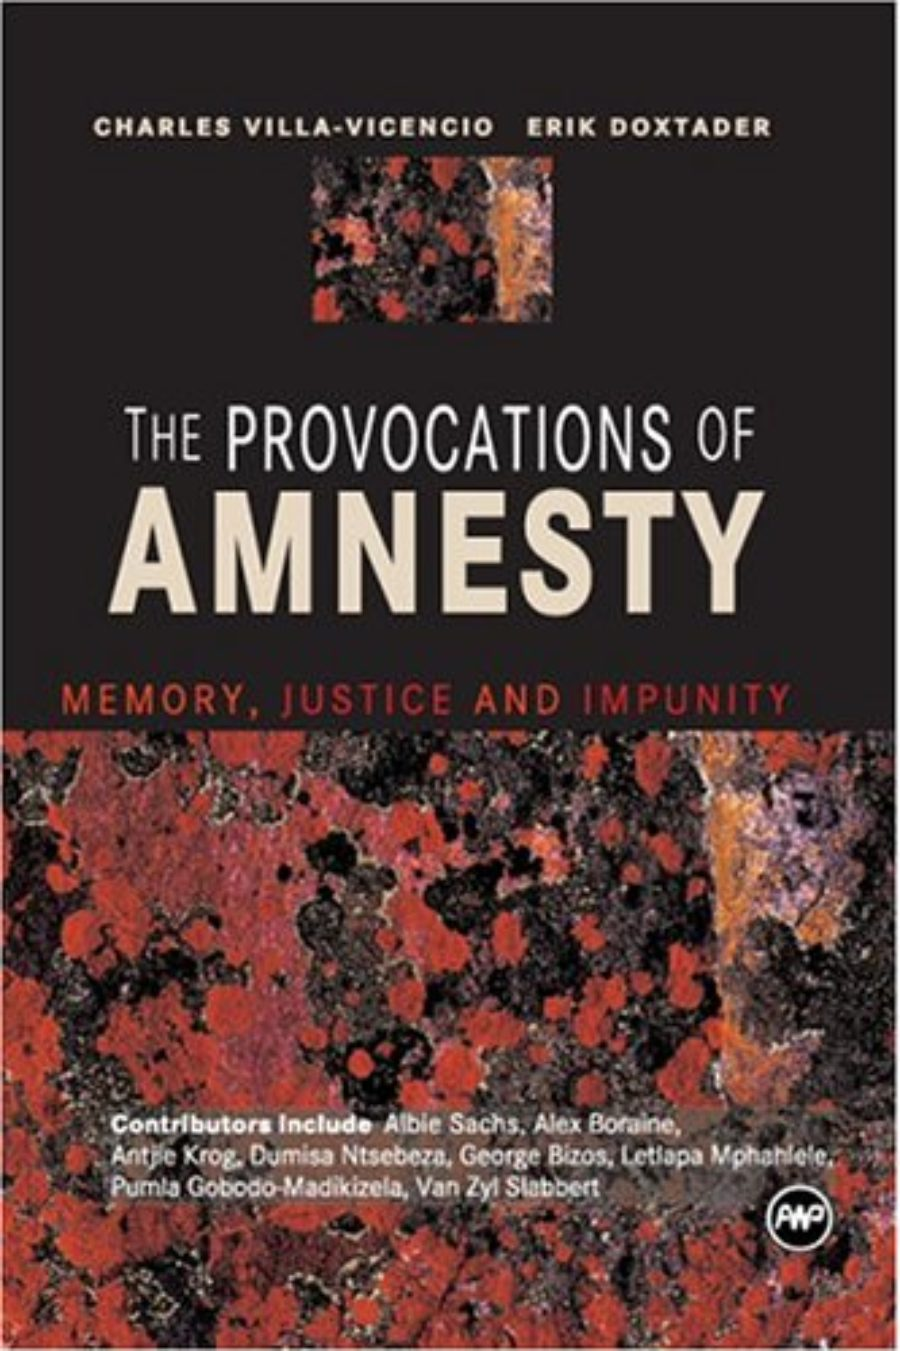 Cover of The Provocations of Amnesty: Memory, Justice, and Impunity